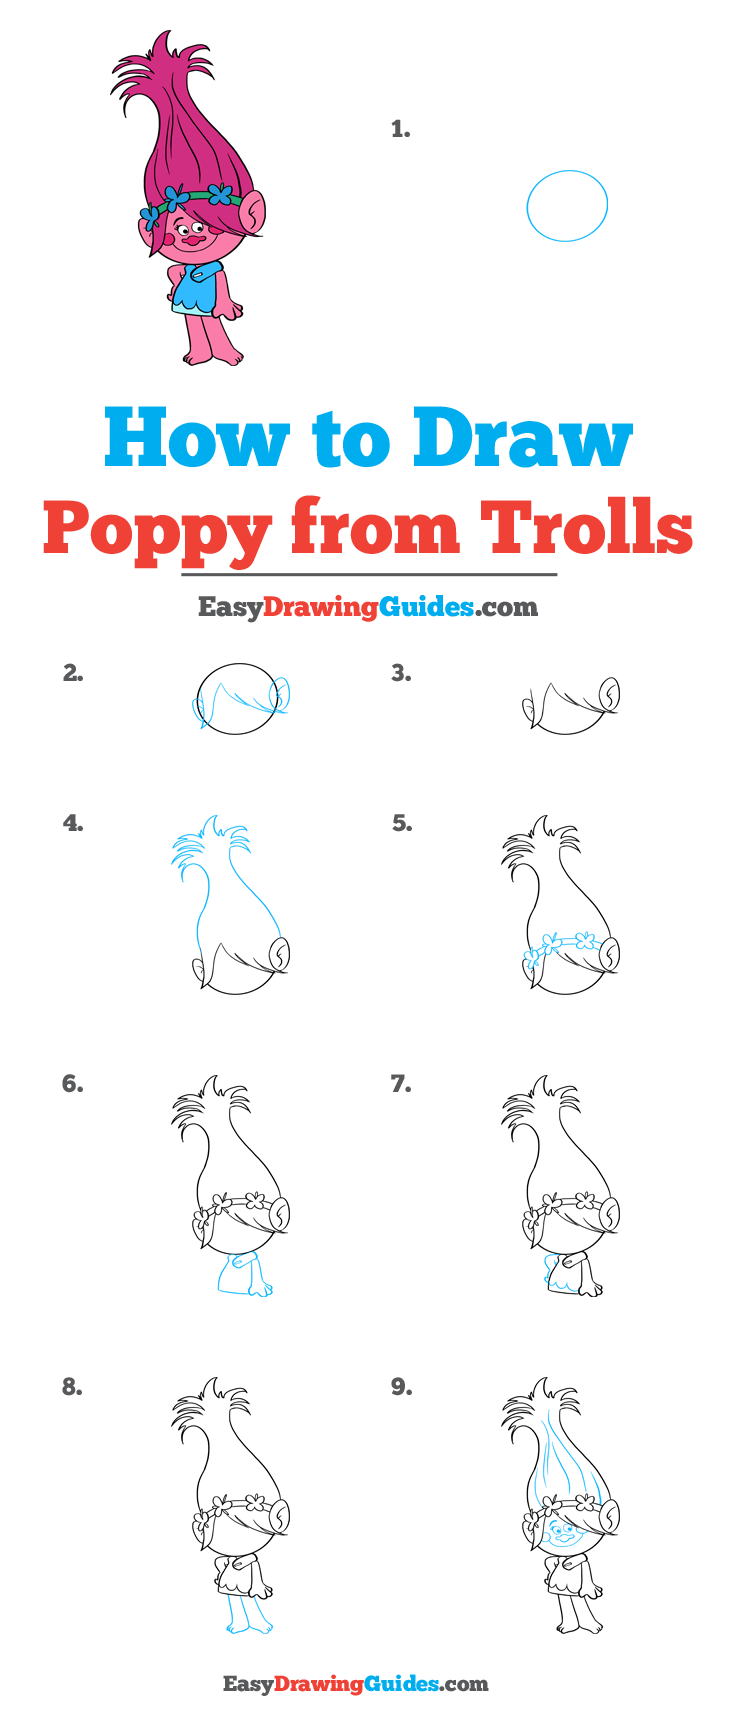 How to Draw Poppy from Trolls Step by Step Tutorial Image